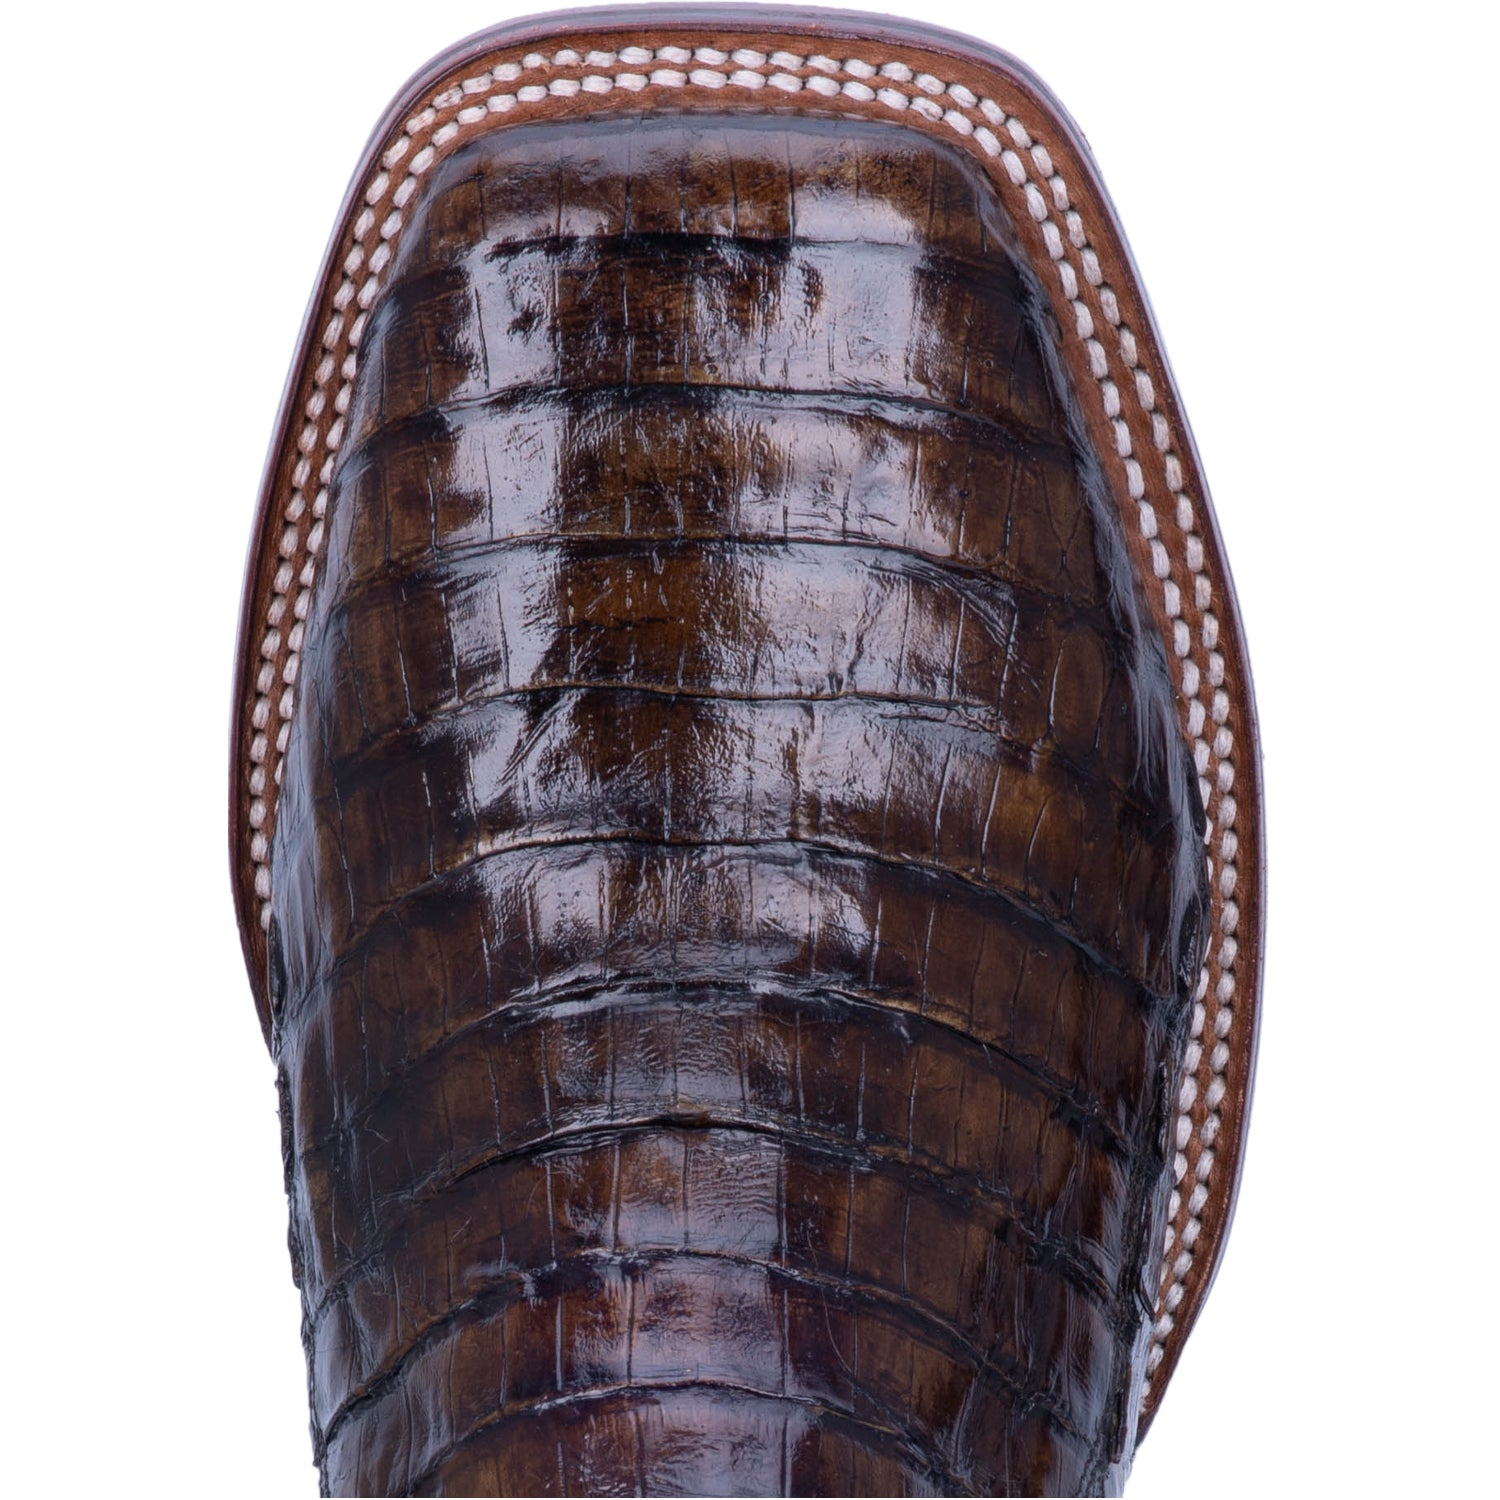 KINGSLY CAIMAN BOOT 5547780046890